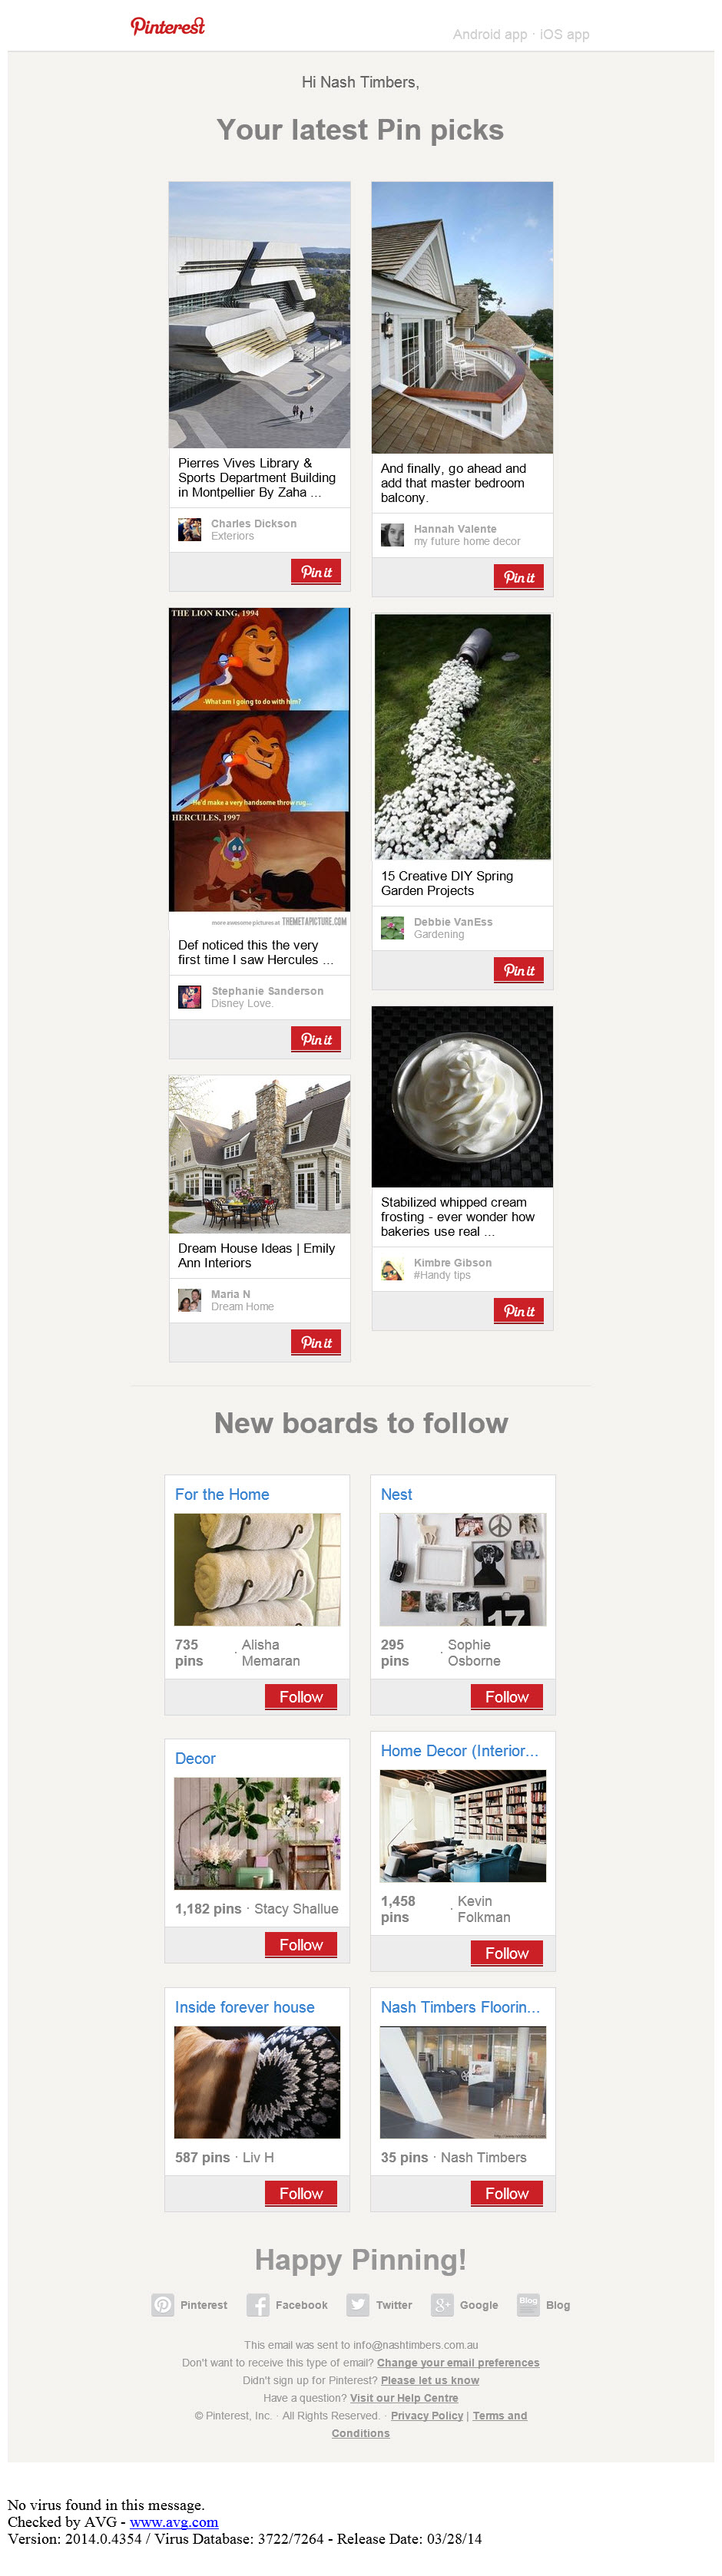 Pinterest email